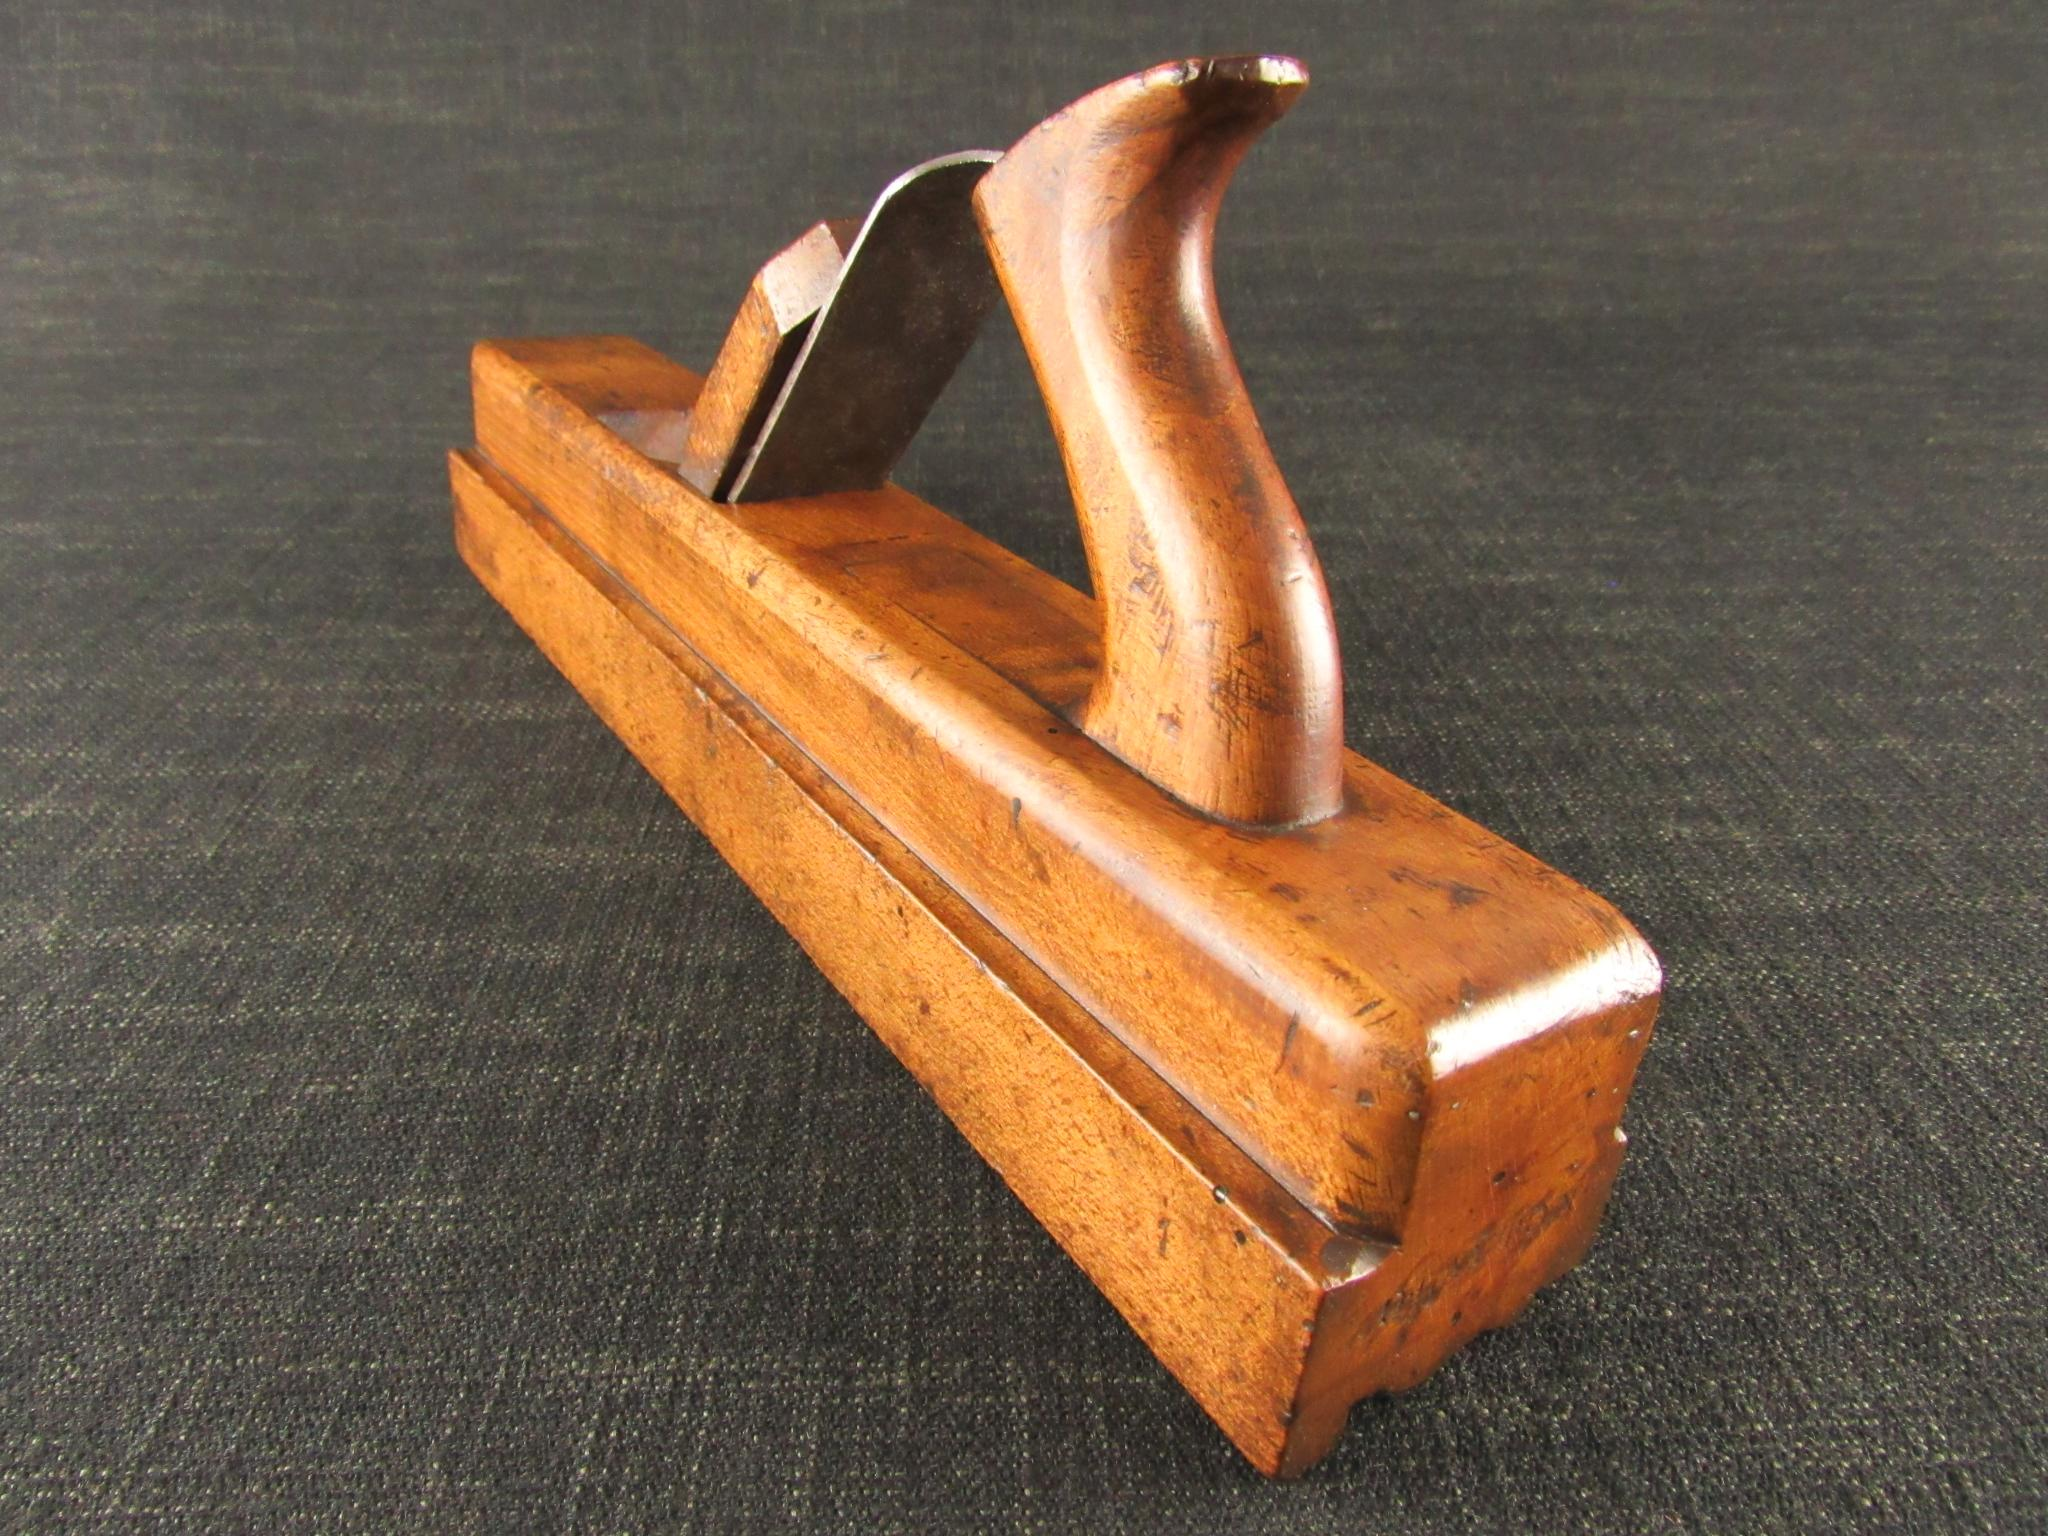 Rare 18th Century Cornice or Crown Moulding Plane by GABRIEL